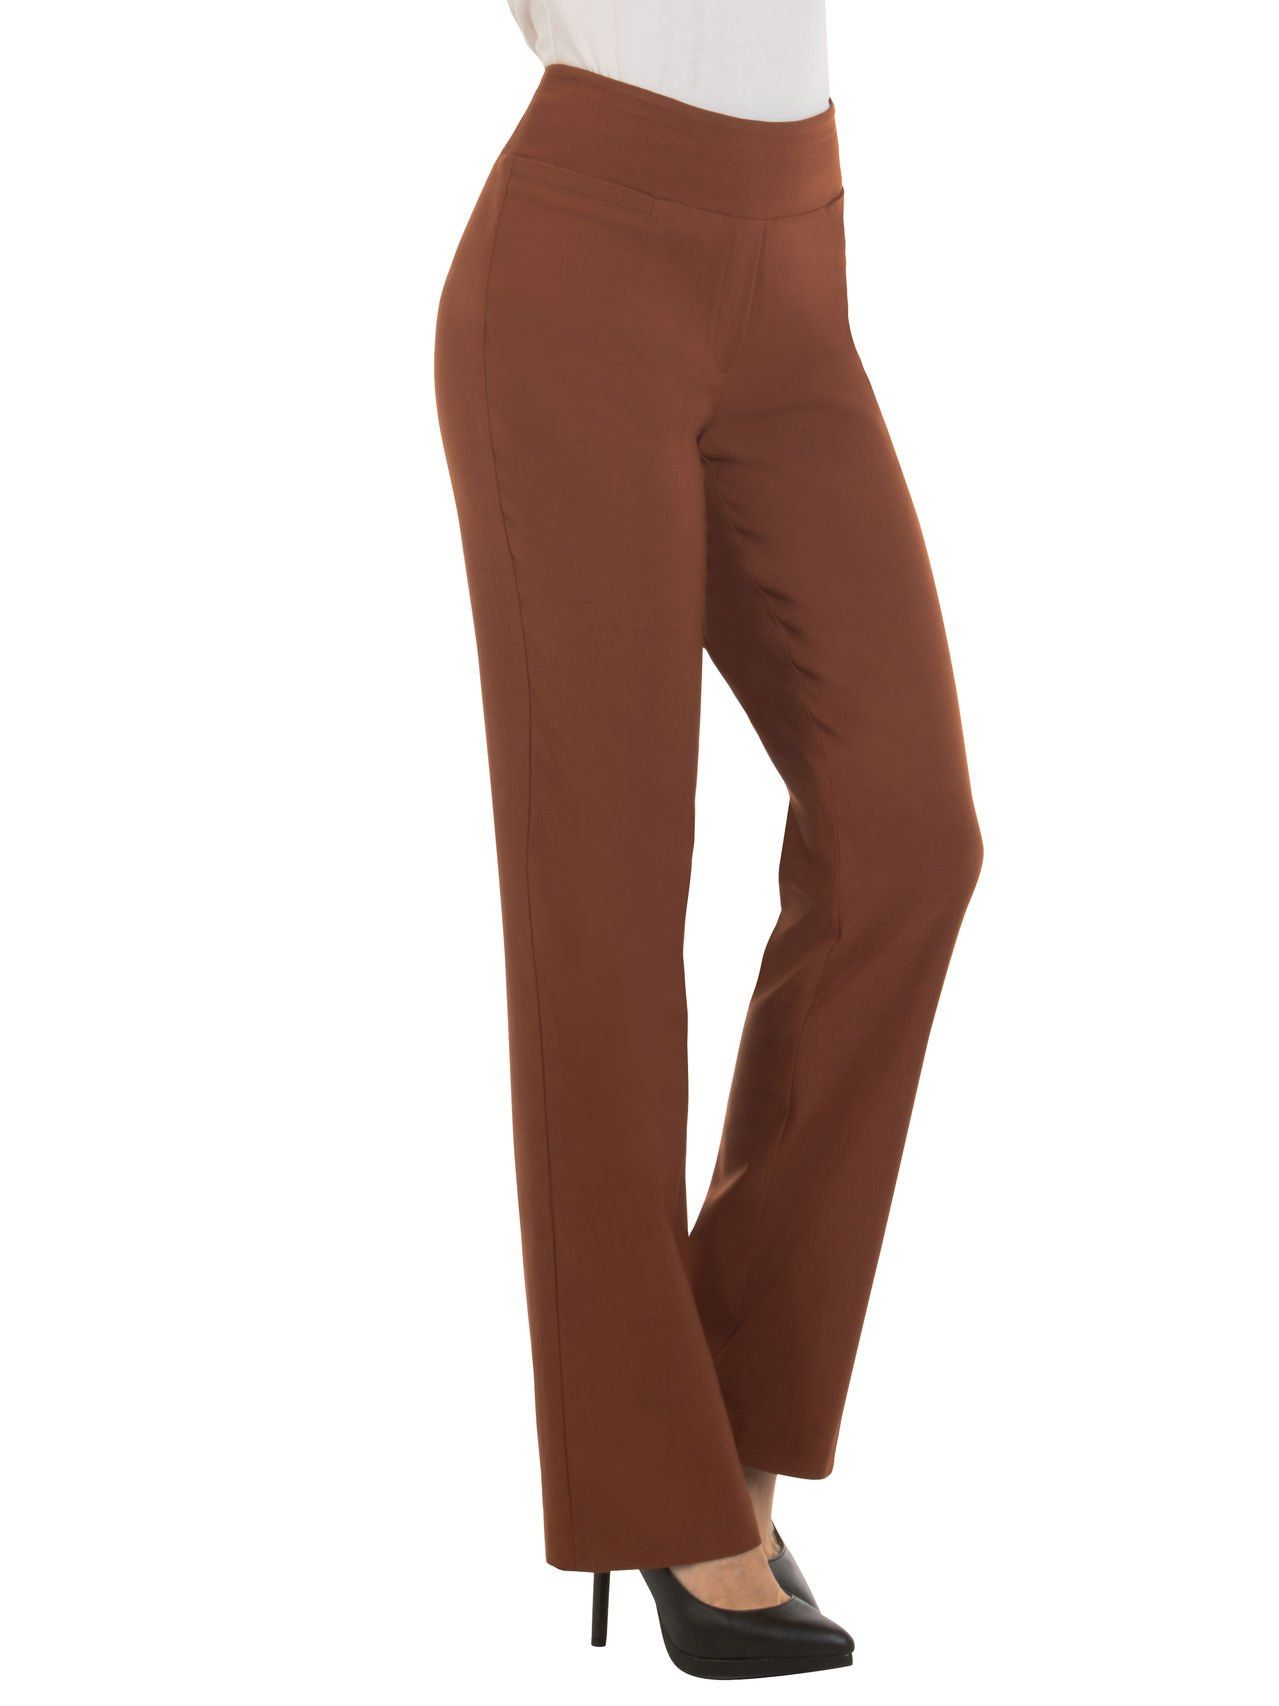 a98124947fedd Red Hanger Bootcut Dress Pants for Women Stretch Comfy Work Pull on Womens  Pant RustS